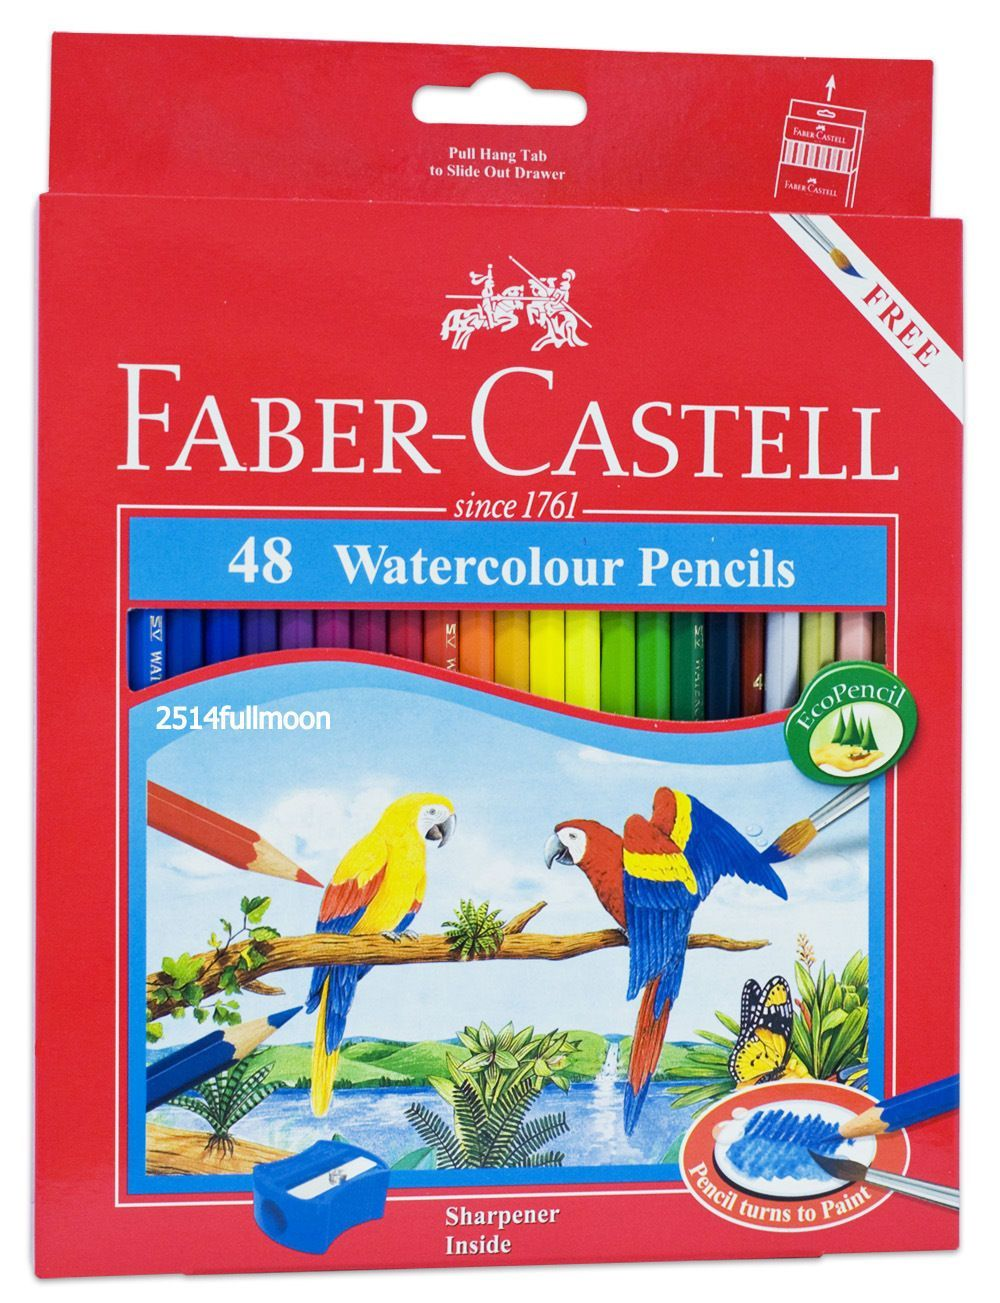 1 Box Faber Castell 48 Watercolor Pencils Coloured Pen 48 Pcs